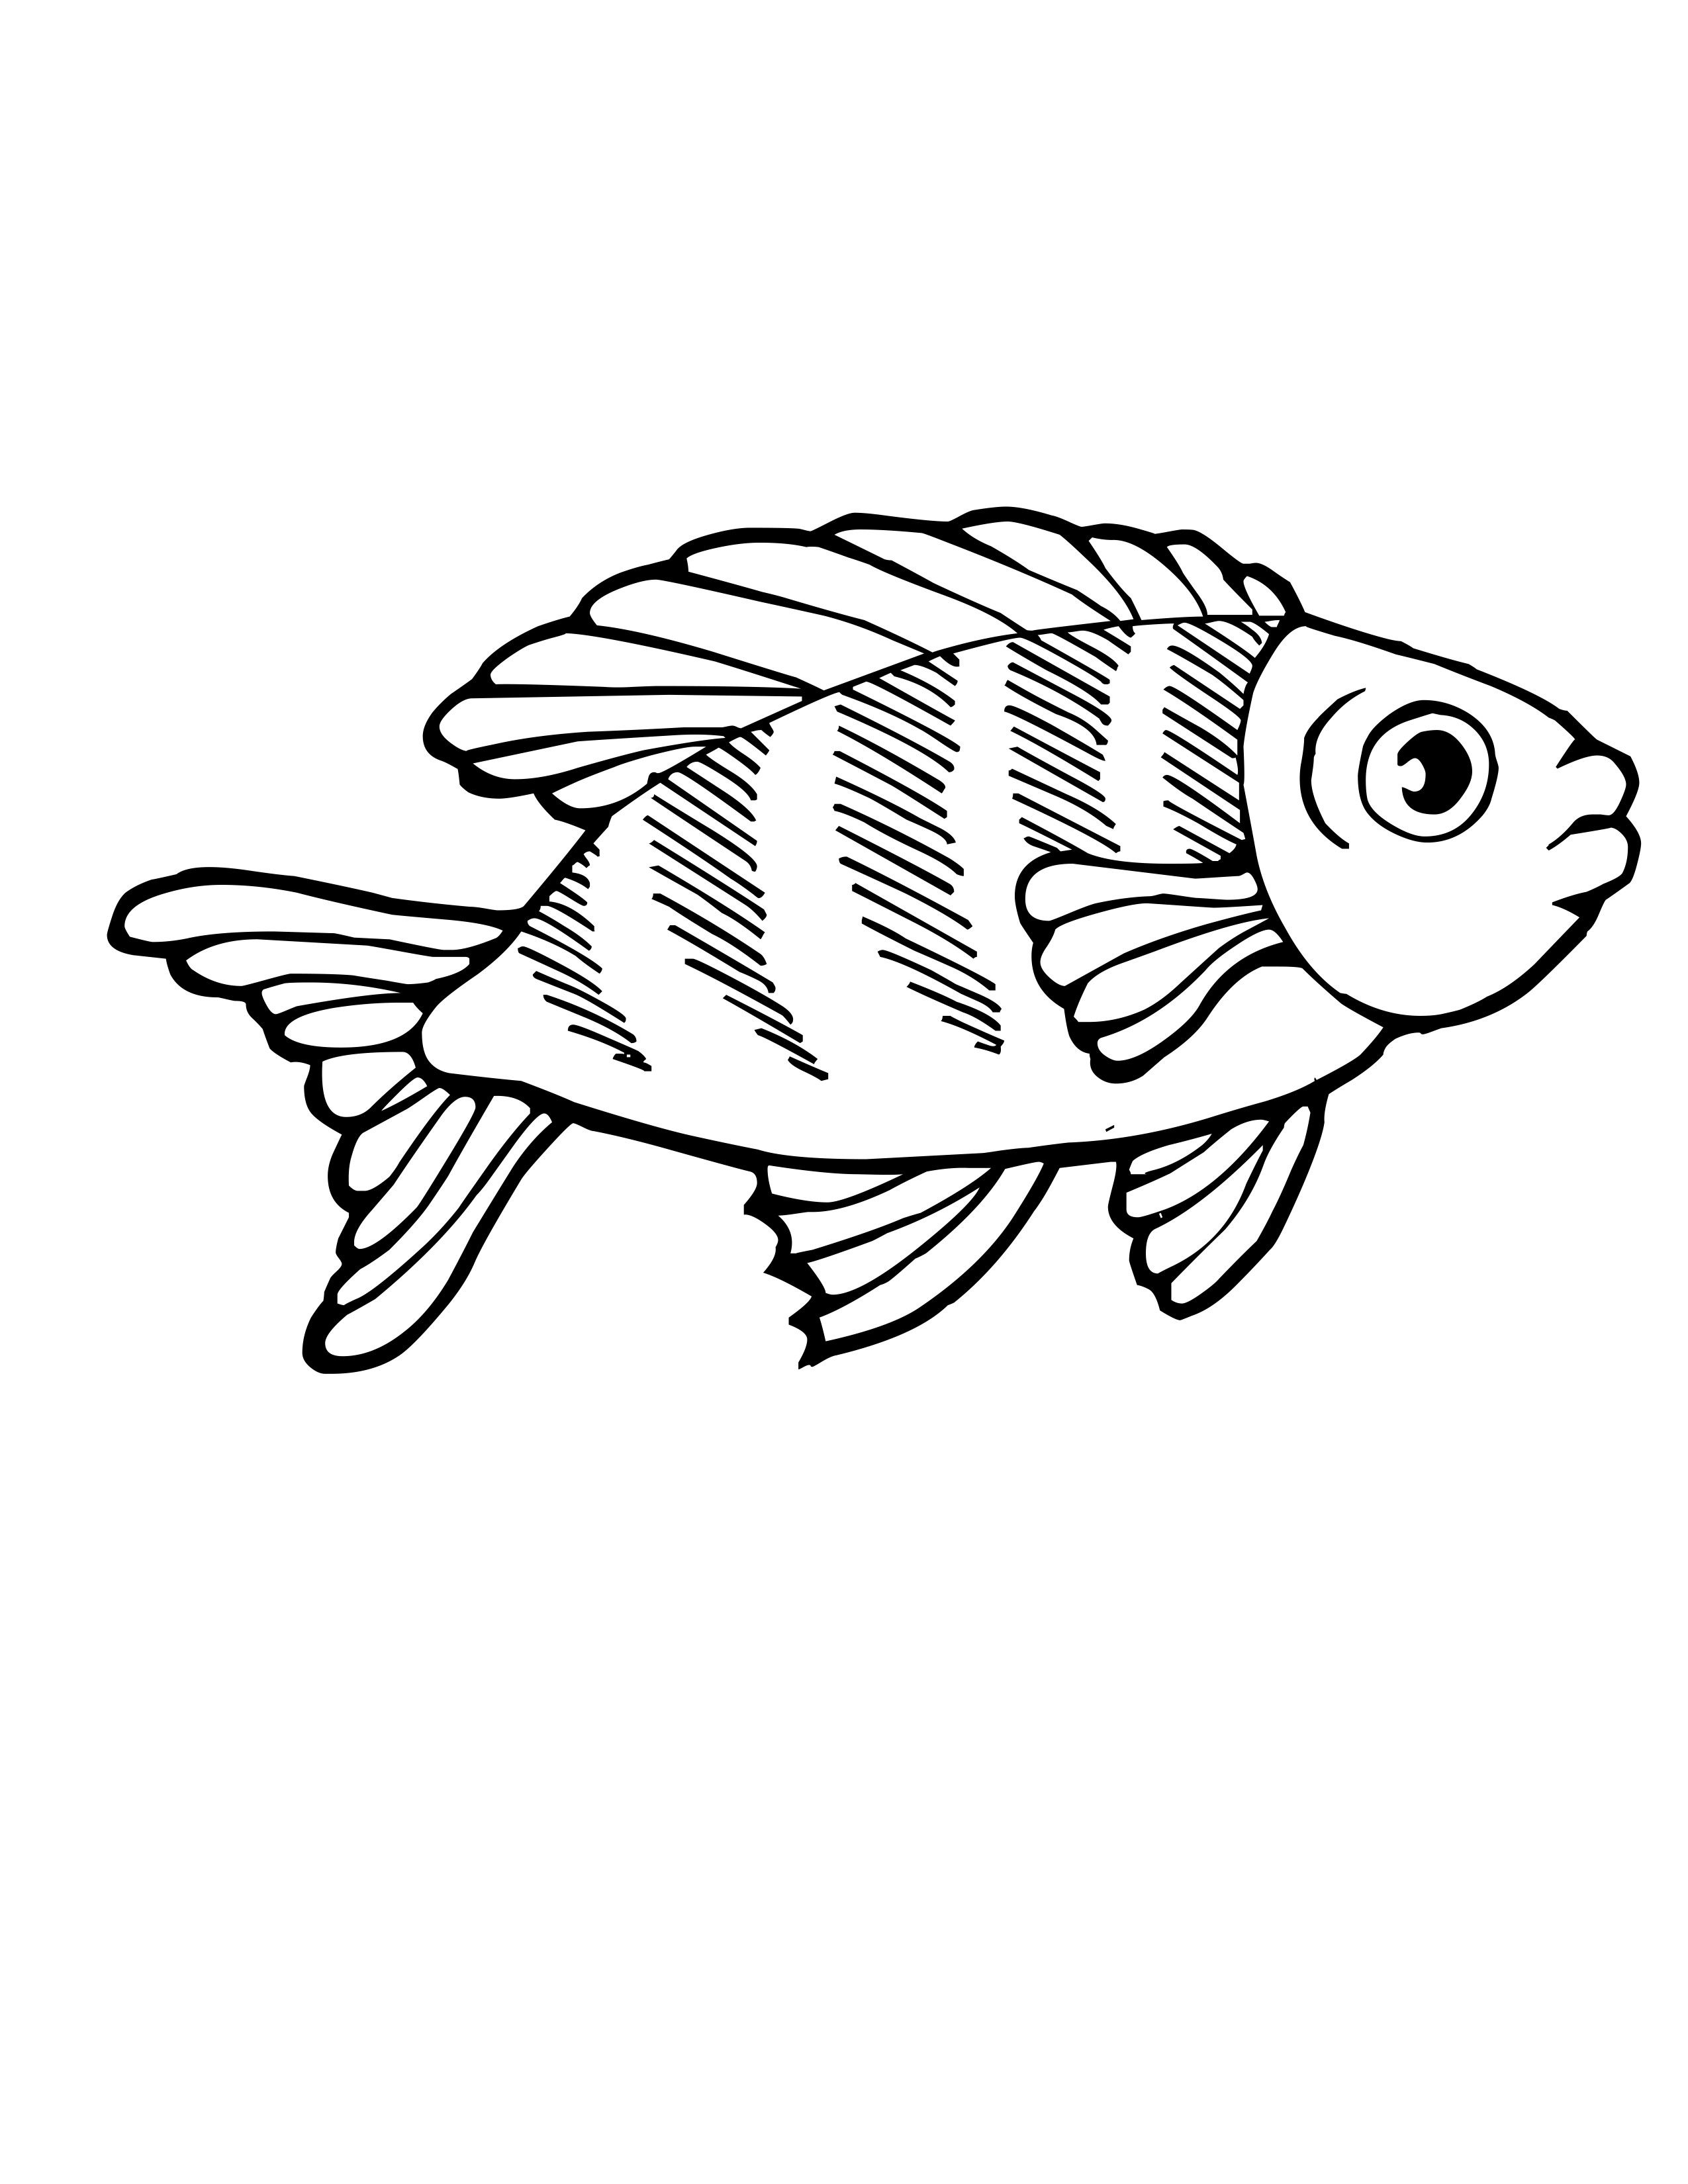 Coloring Fish Pages Saltwater 2020 Fish Coloring Page